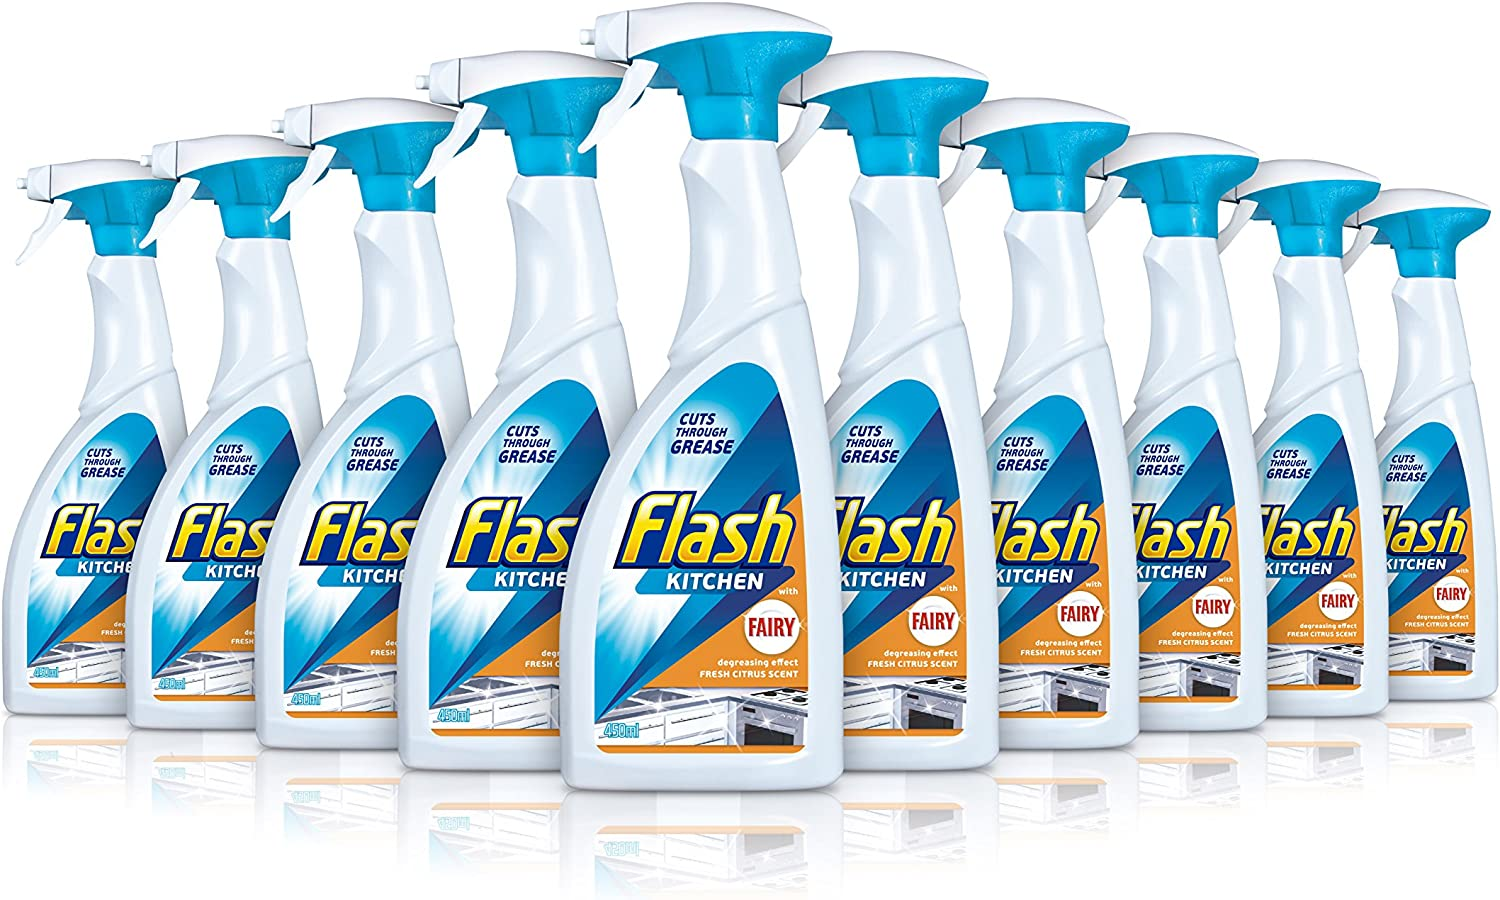 Flash Kitchen Spray Dissolves Grease and Leaves Shine